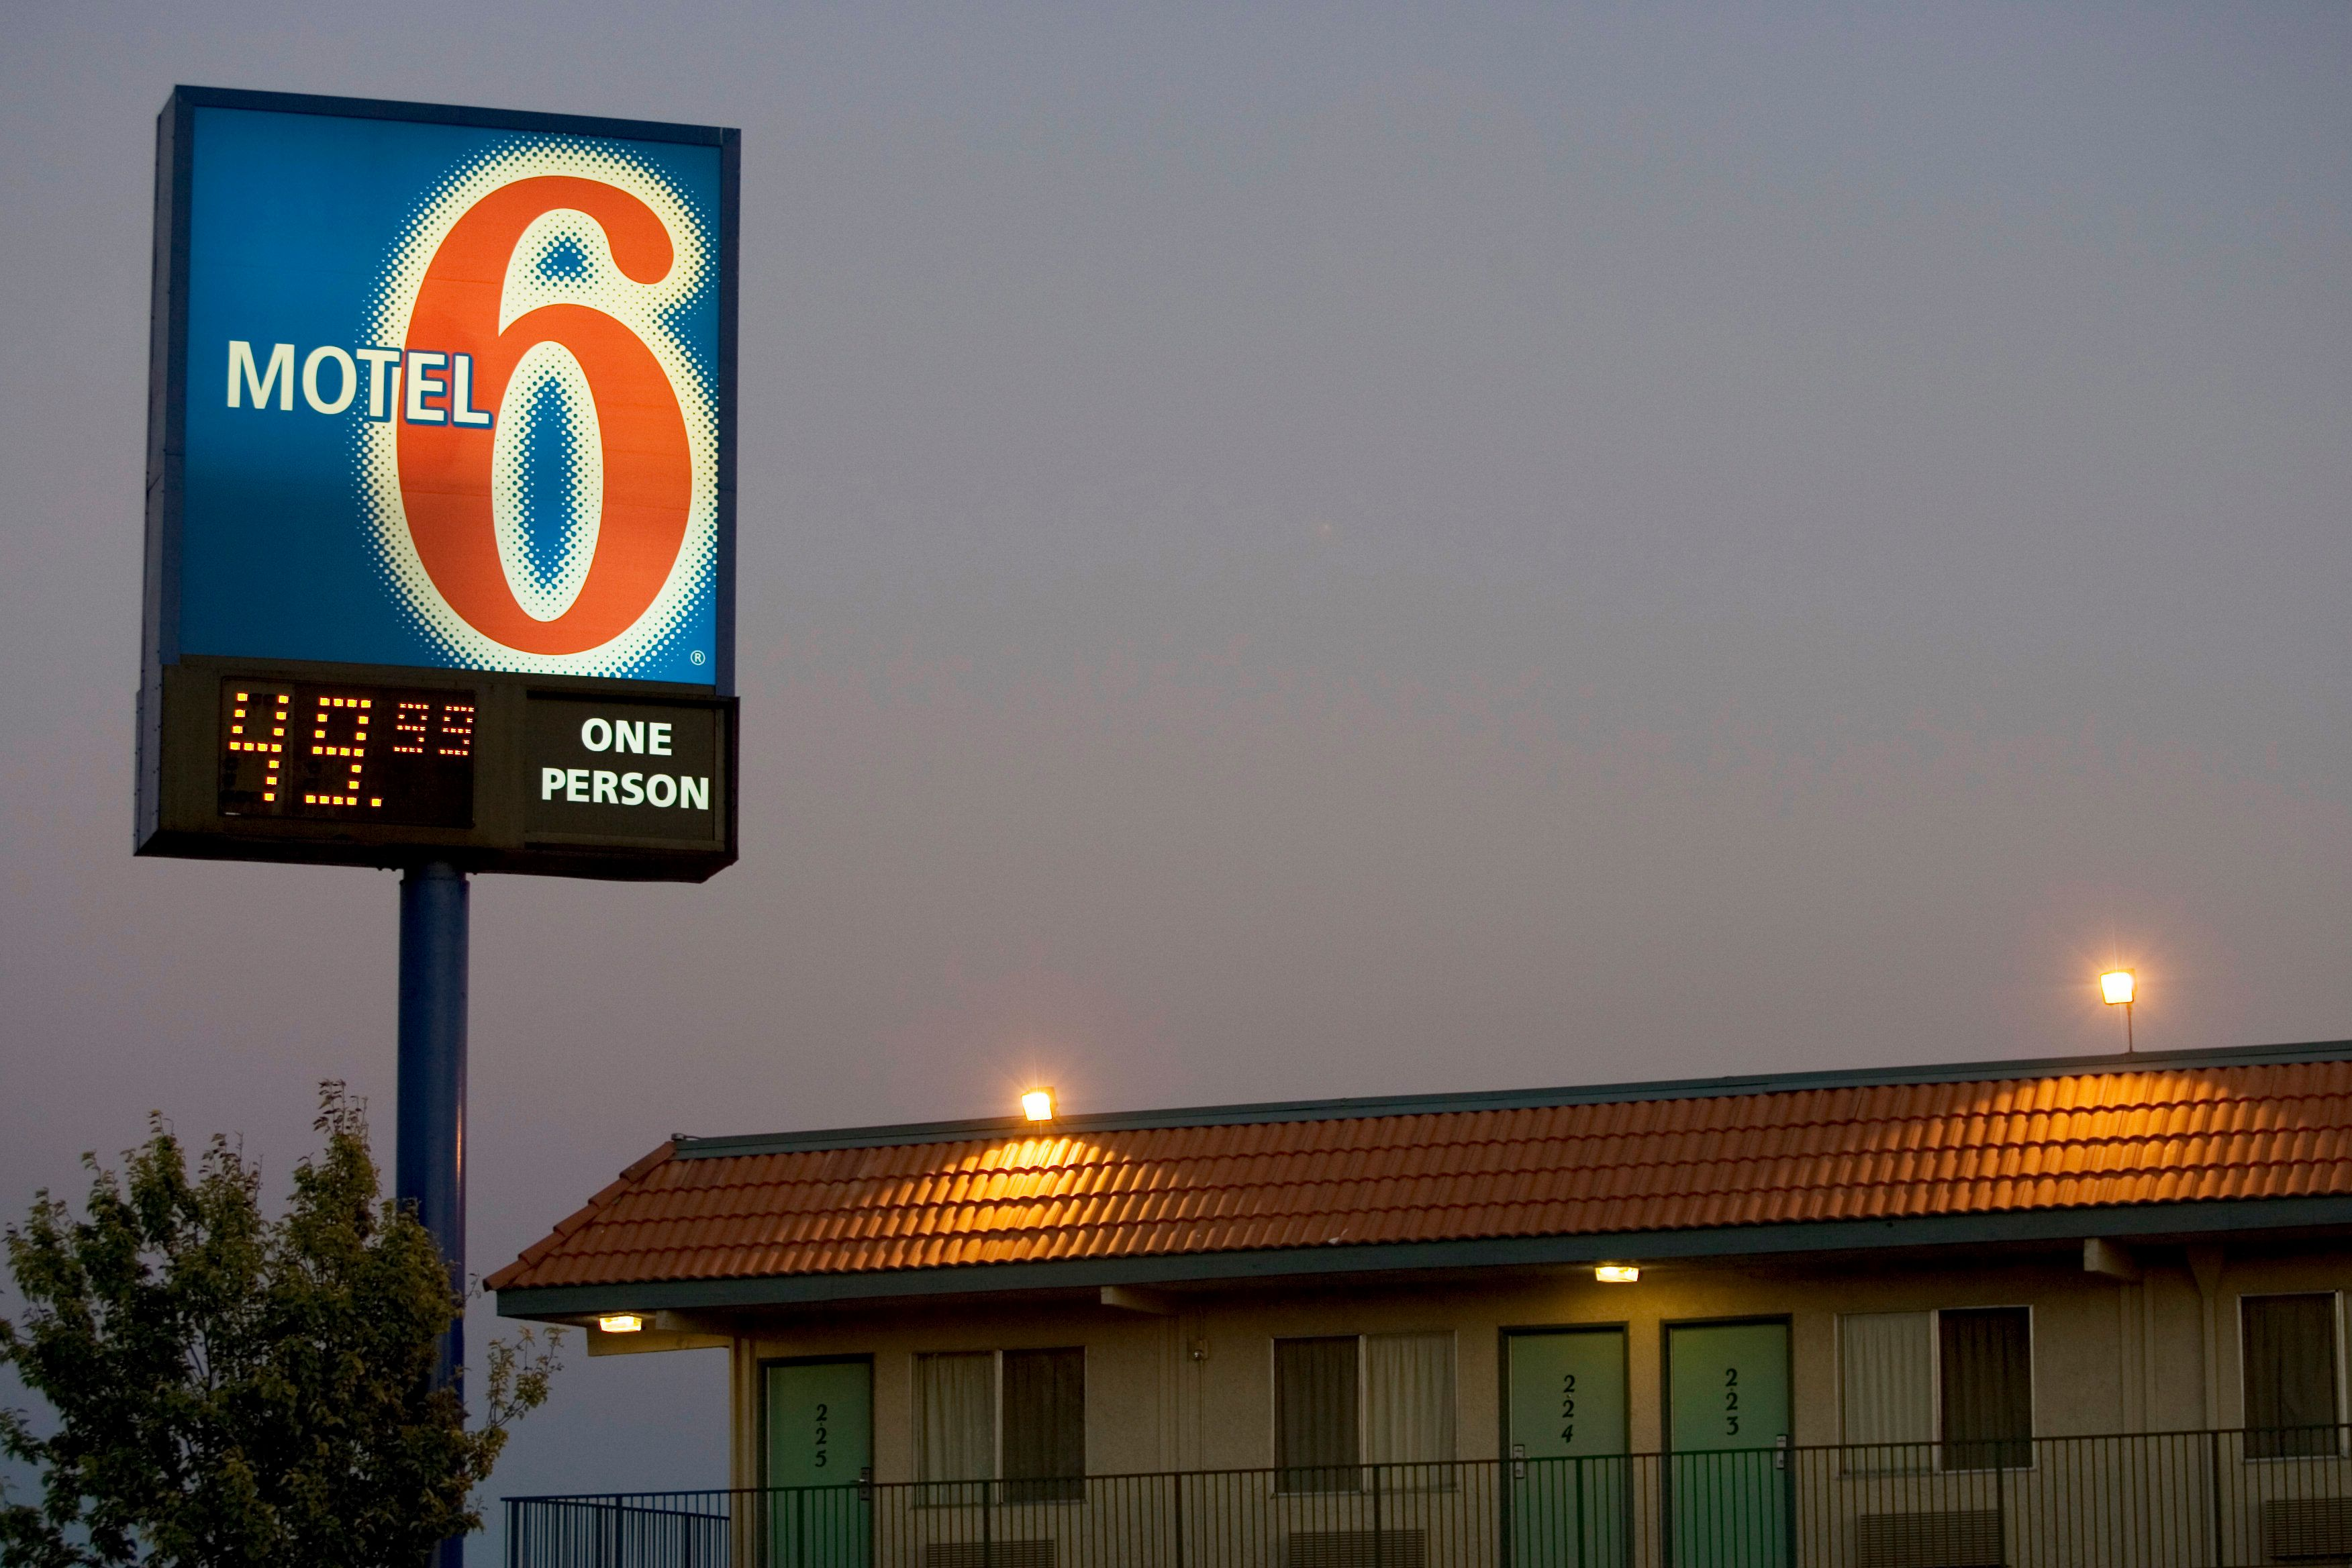 A Motel 6 showing nightly rate by Freeway 14 in California. Motel six is part of the Accor chain of hotels. (Photo by James Leynse/Corbis via Getty Images)